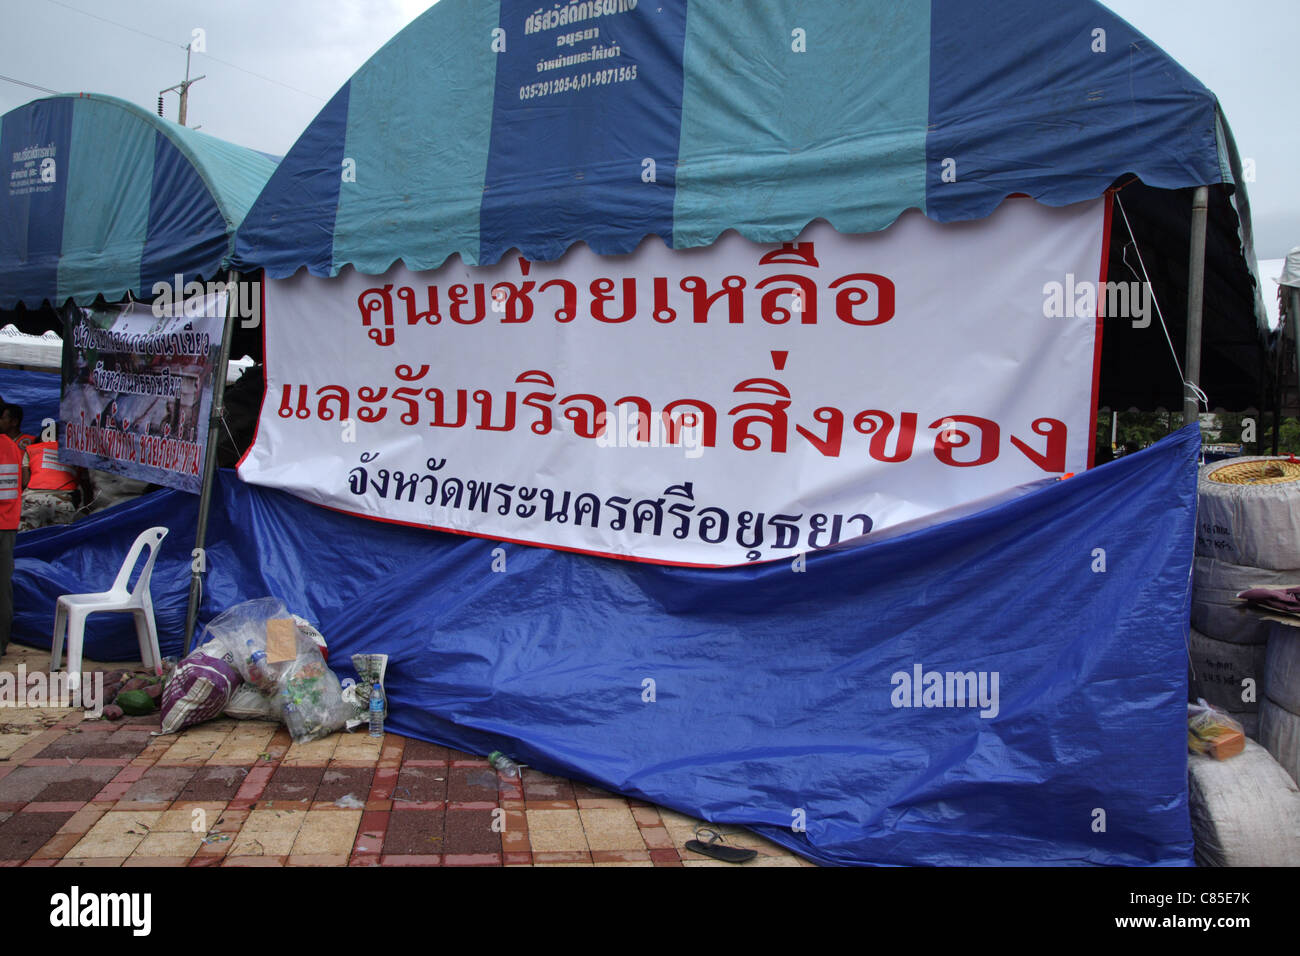 Donation center for helping floodwater victims at Ayutthaya , Thailand Stock Photo